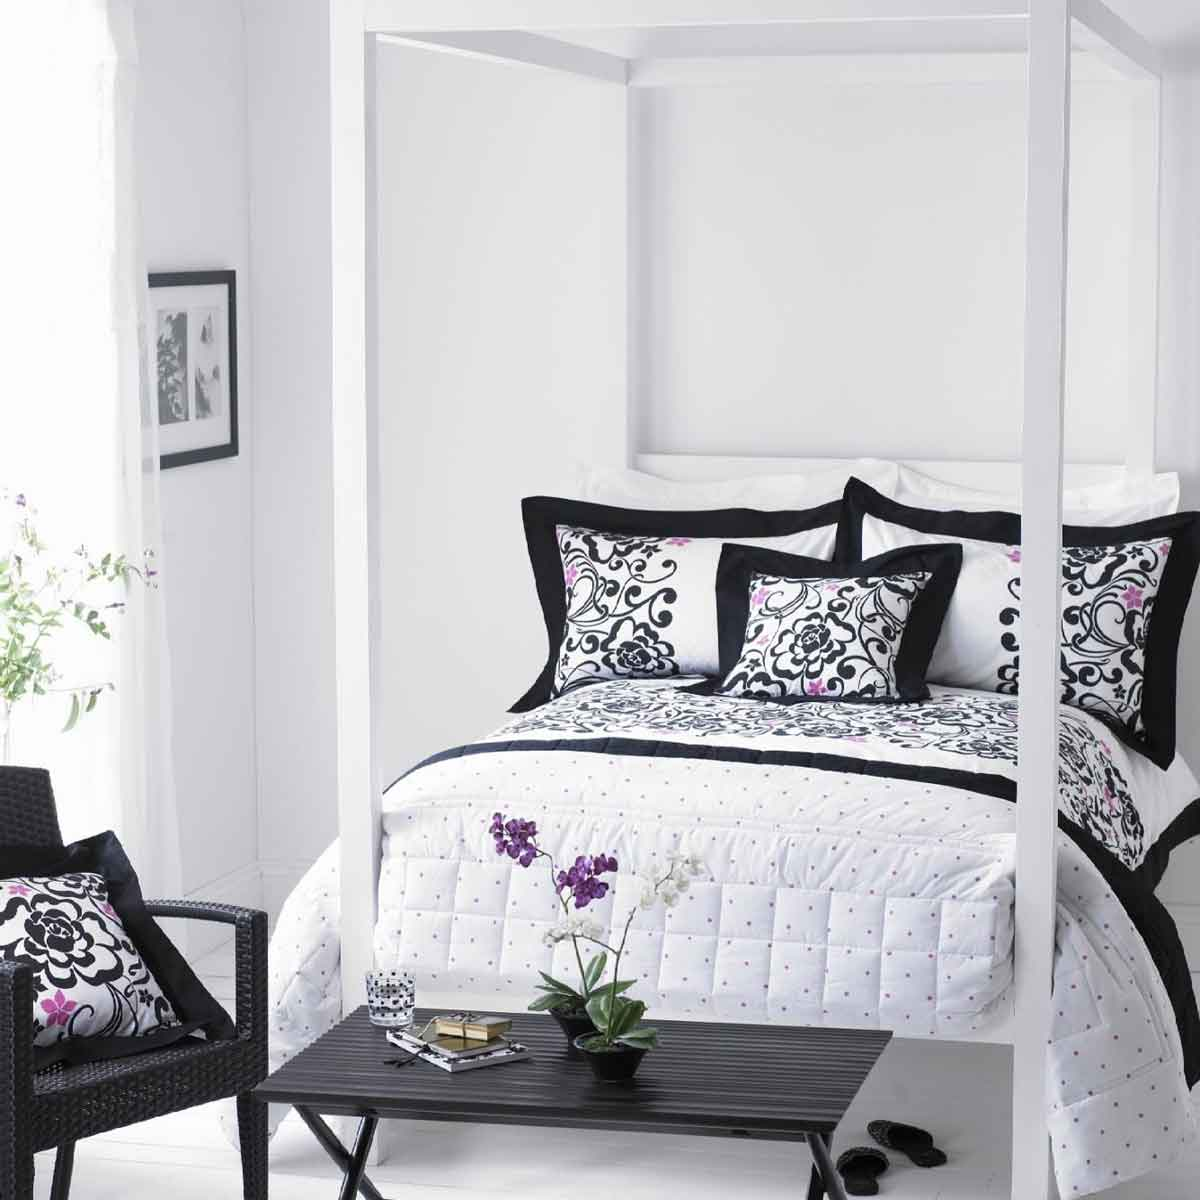 black-white-gray-bedroom-decor-design-idea-elegant-chic-modern  title=